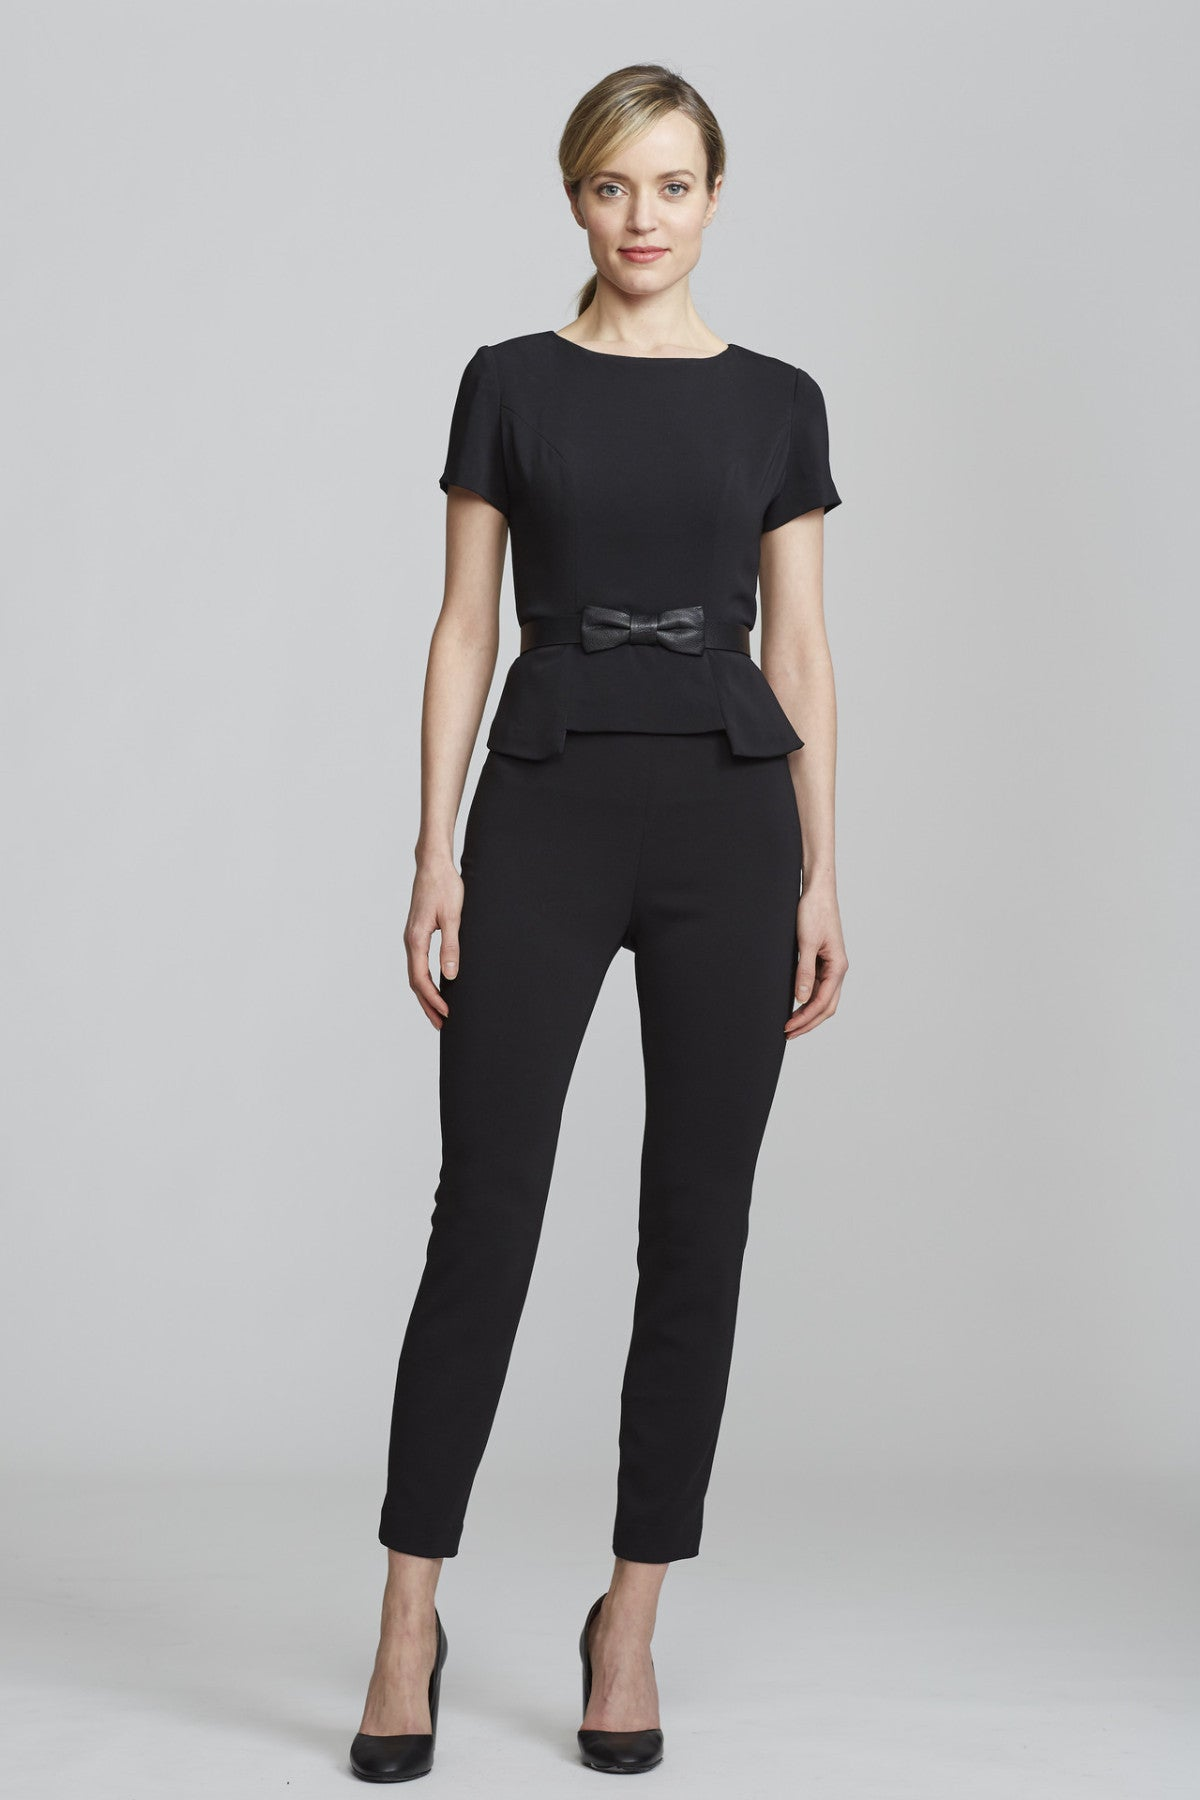 Women's Chelsea Top in Black | Nora Gardner - Front